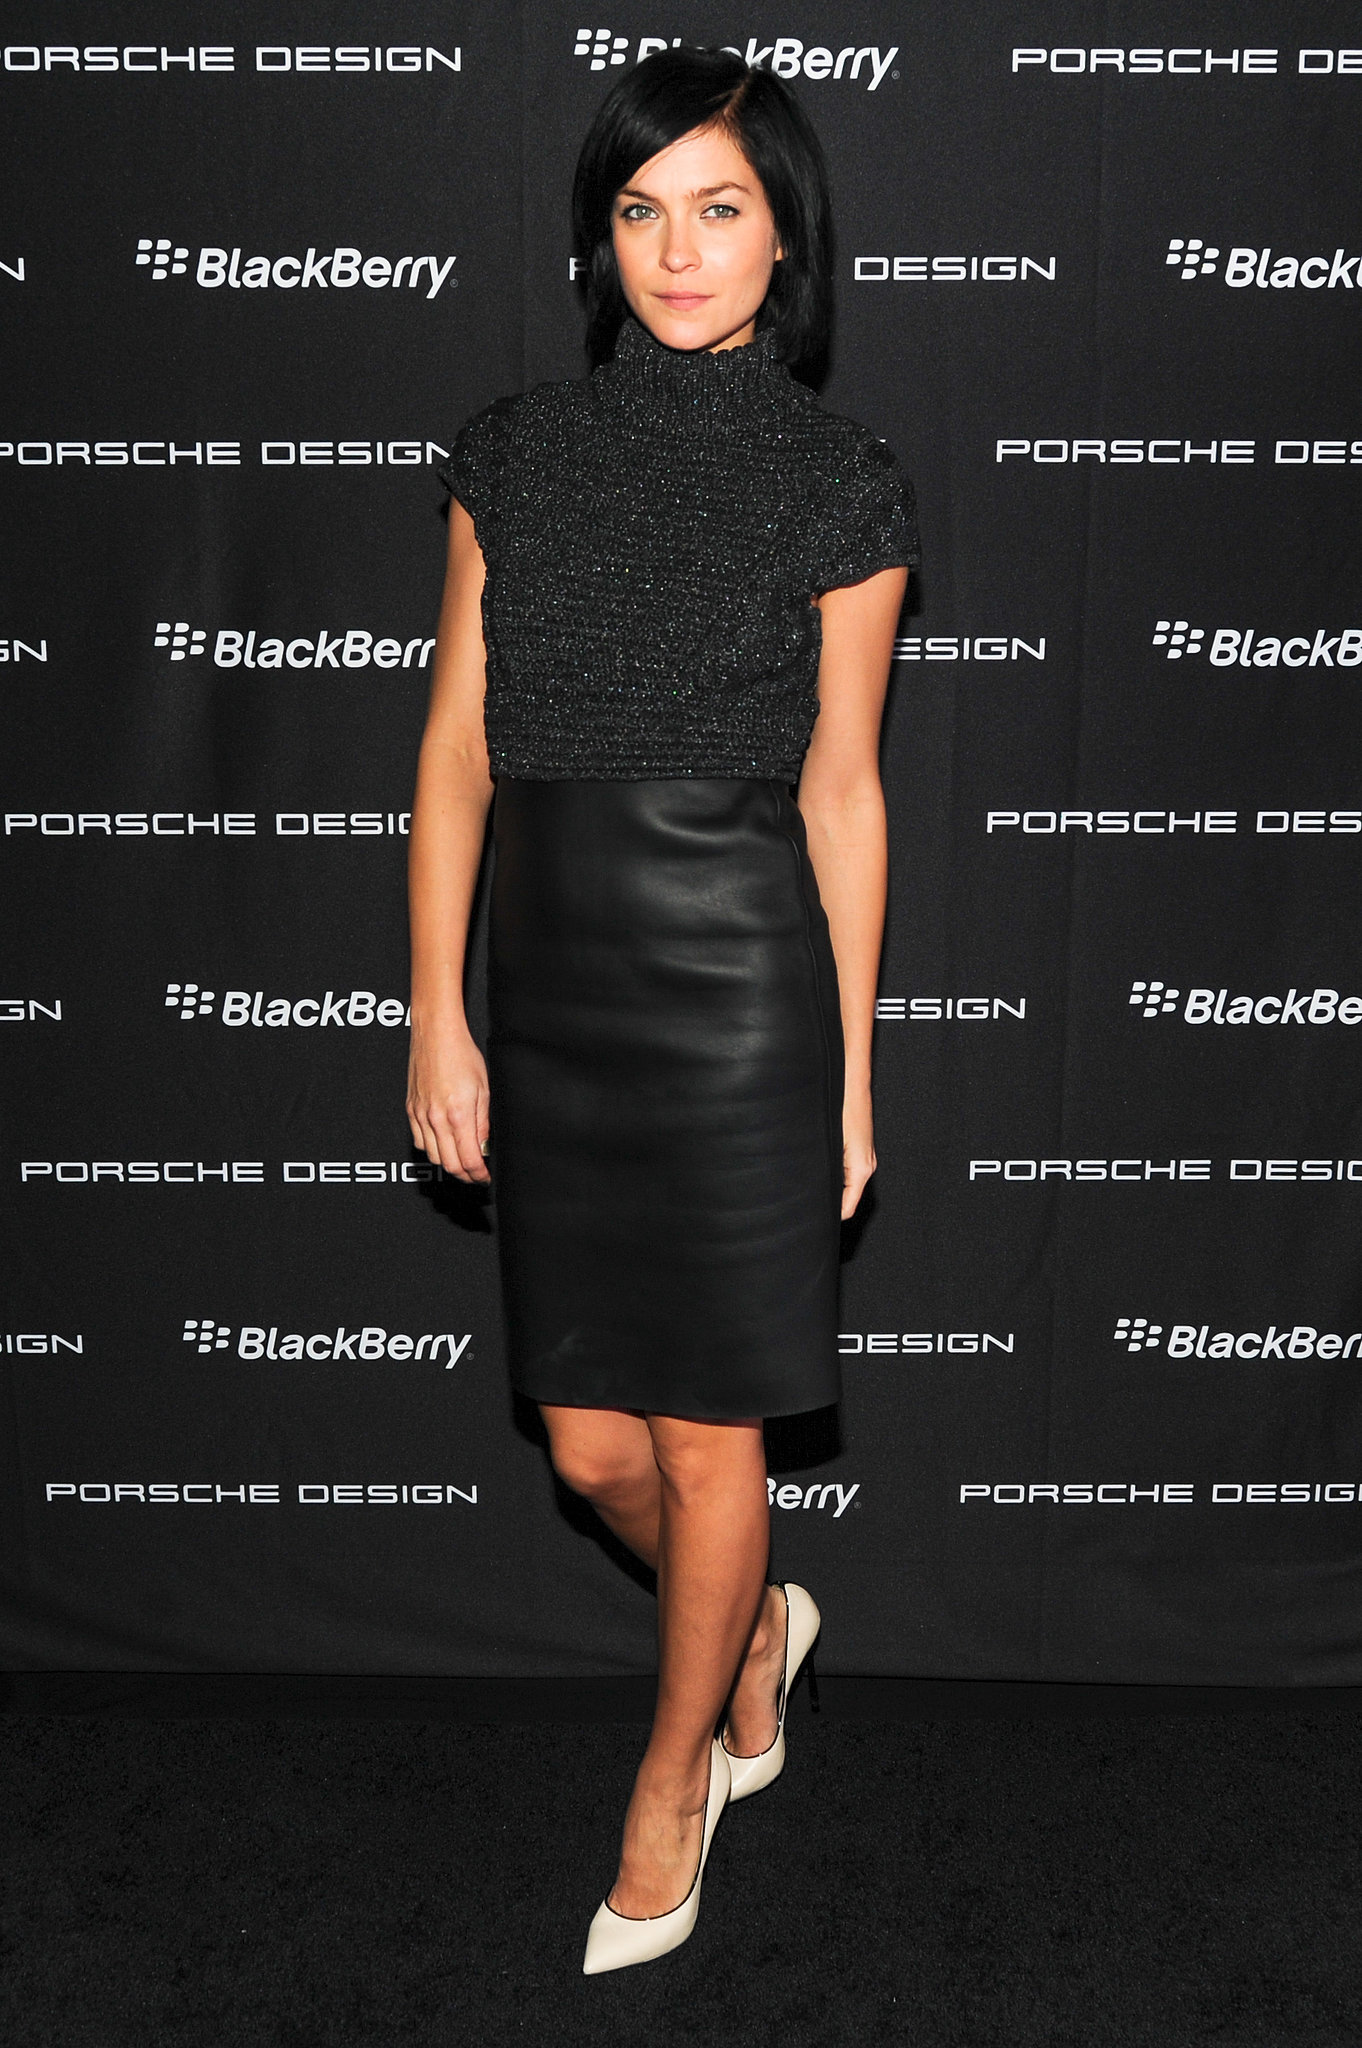 Leigh Lezark at the Porsche Design BlackBerry launch party.